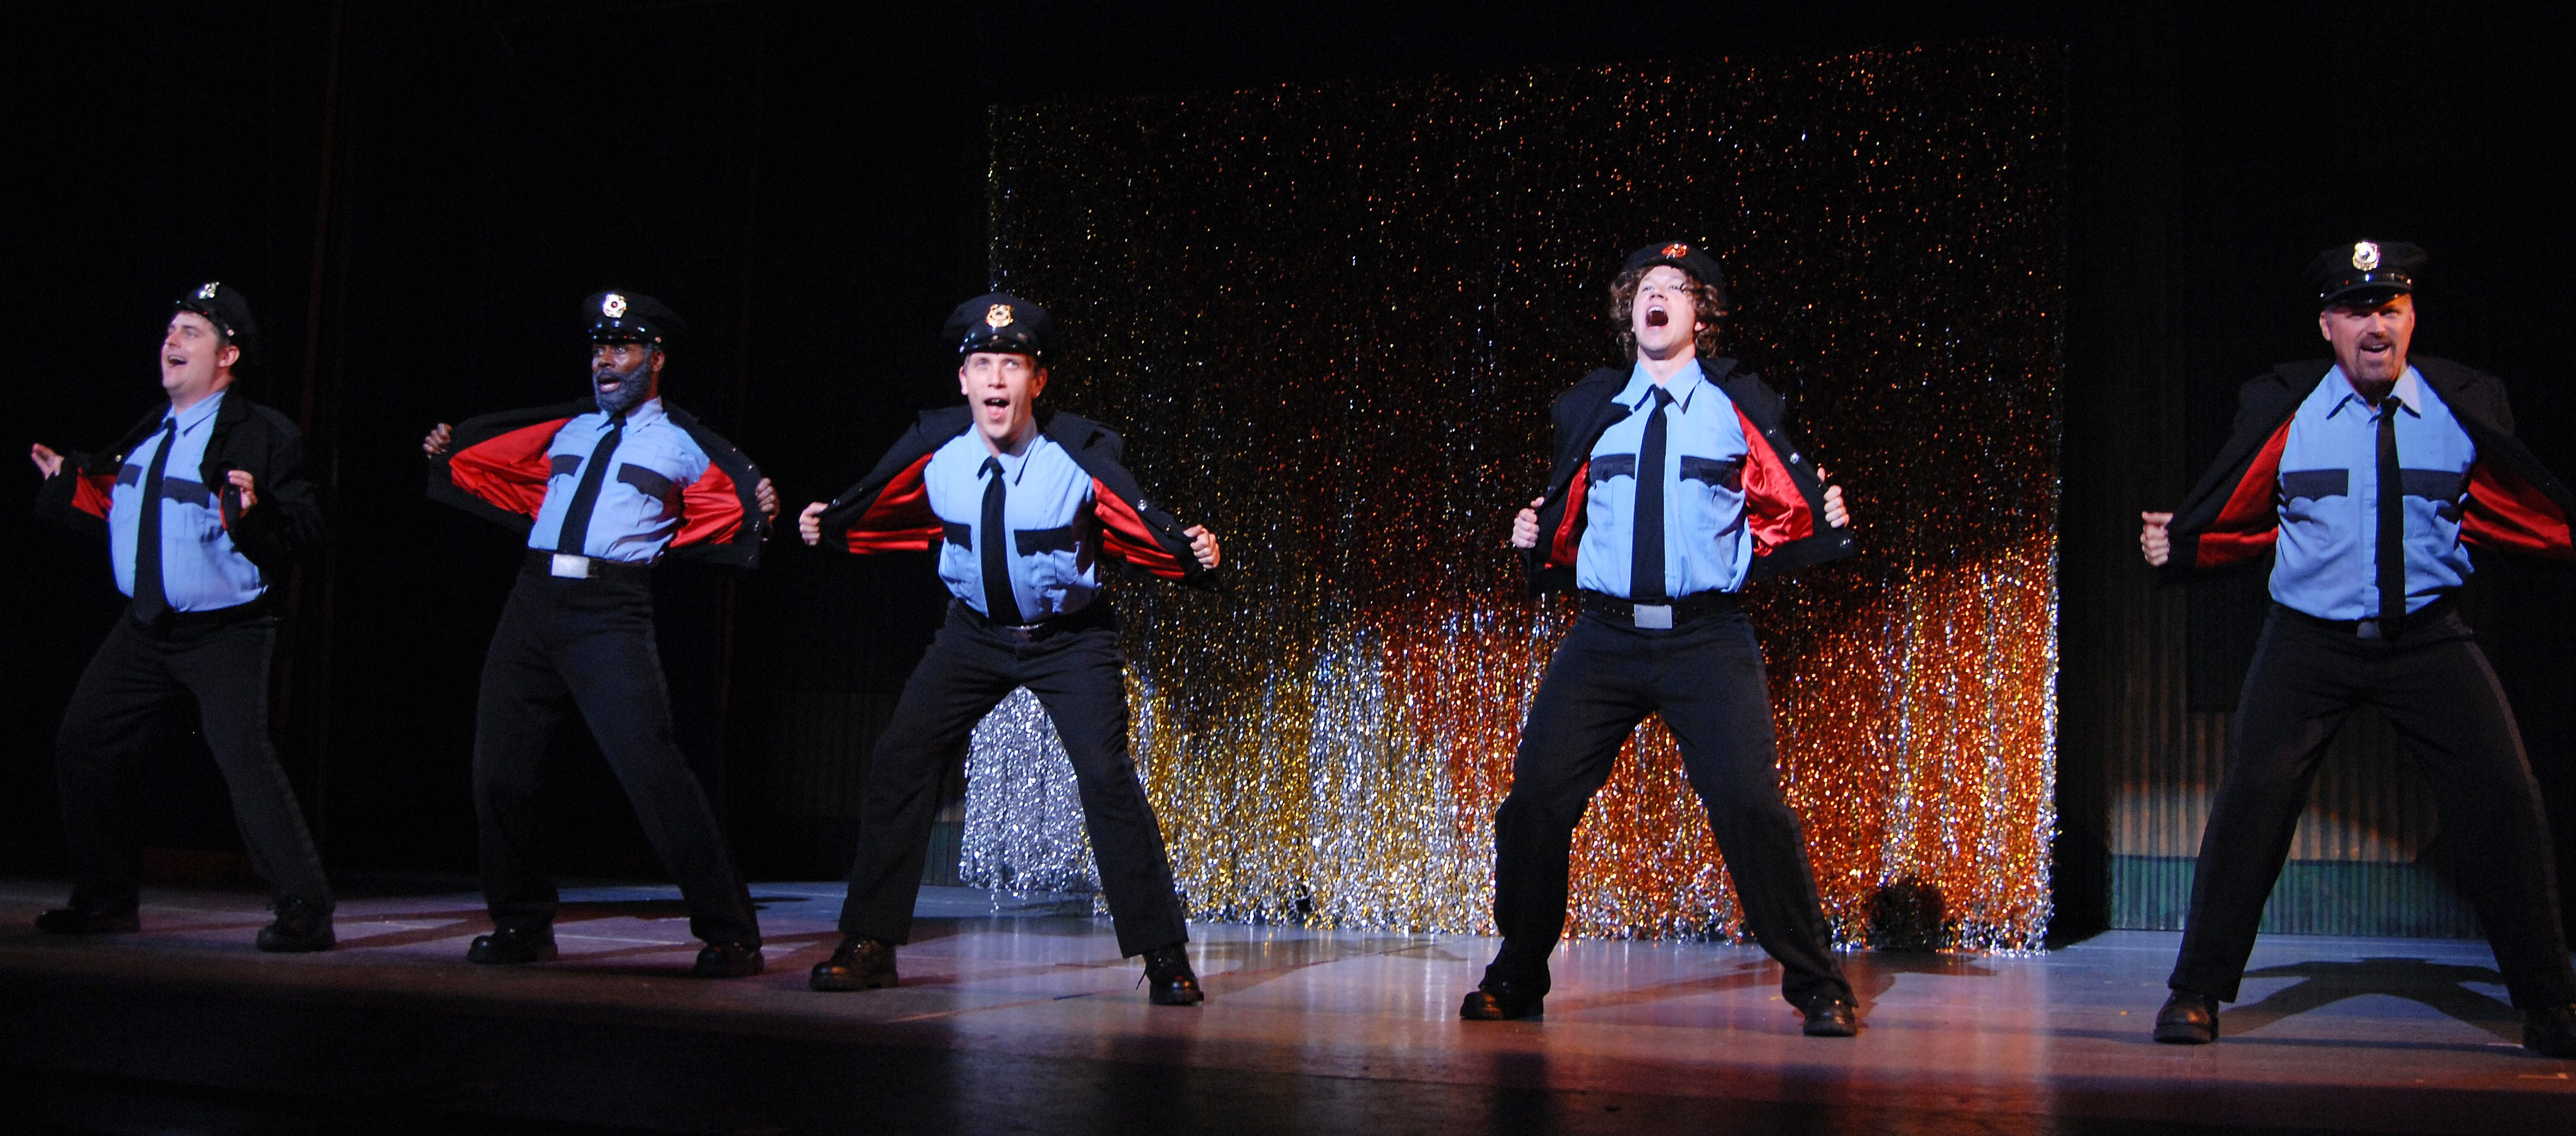 Costumed as cops, the boys are about to show what they're made of in 'The Full Monty.'